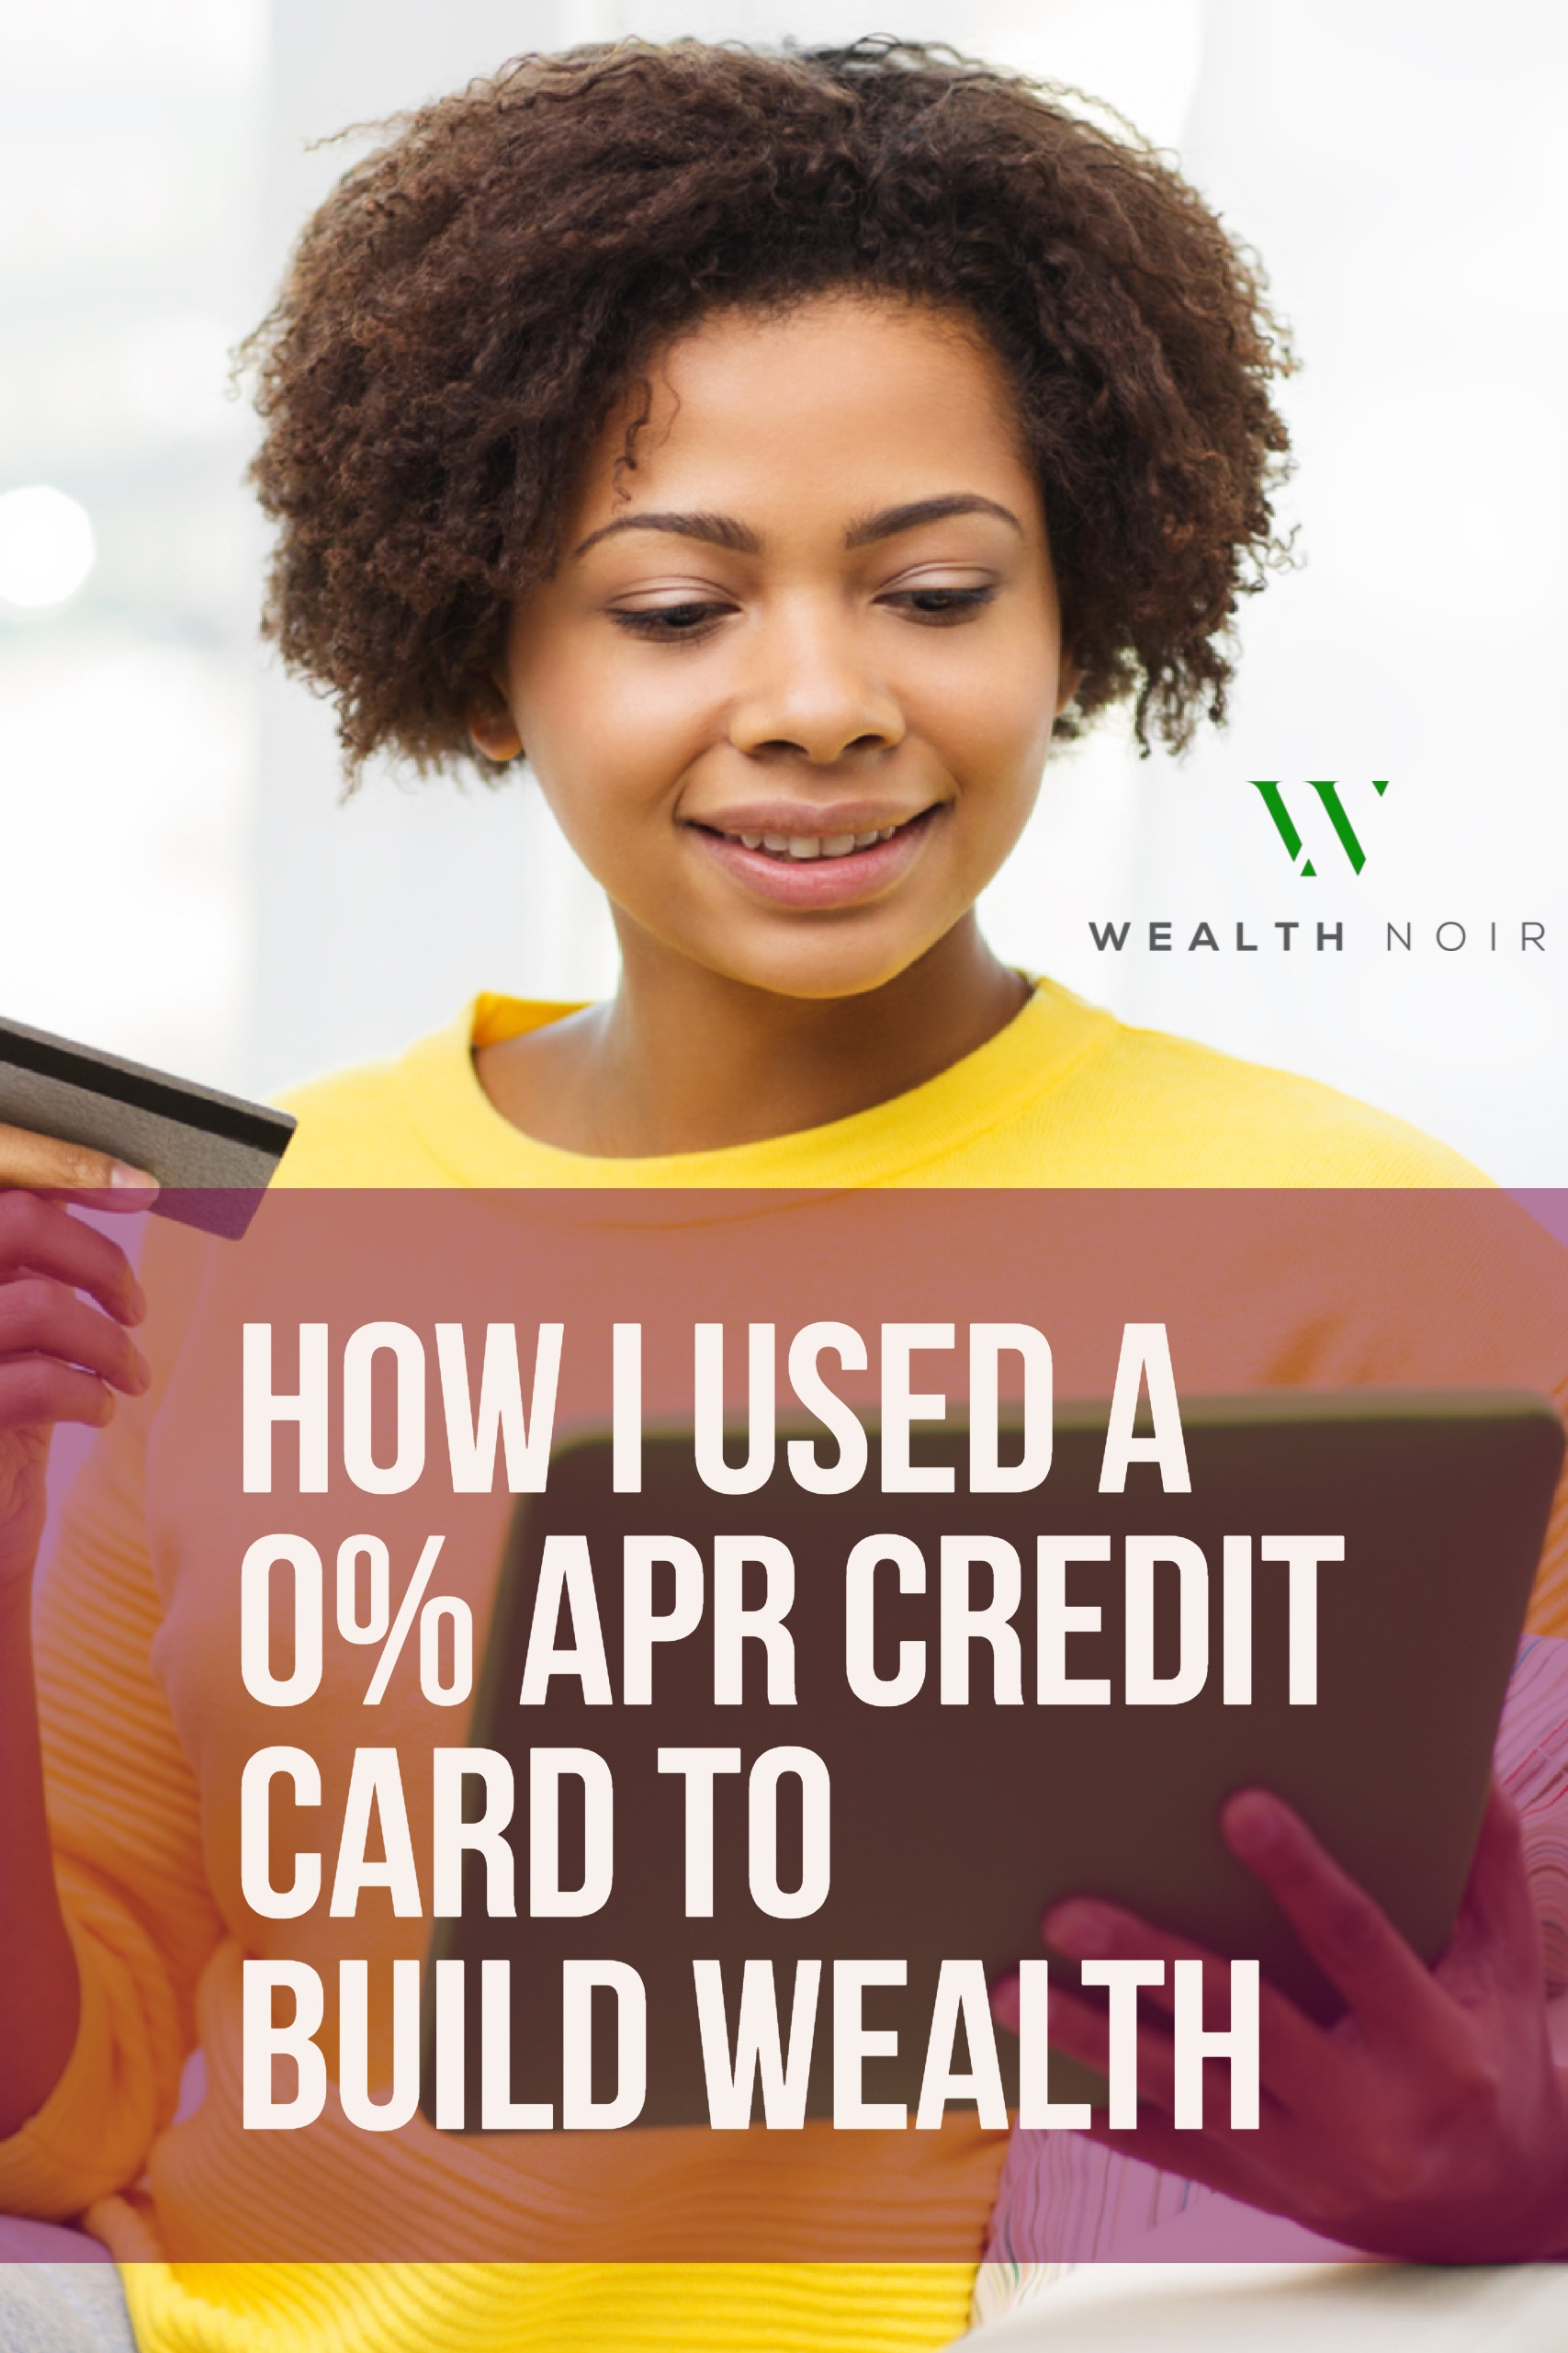 How I Used a 0% APR Credit Card to Build Wealth